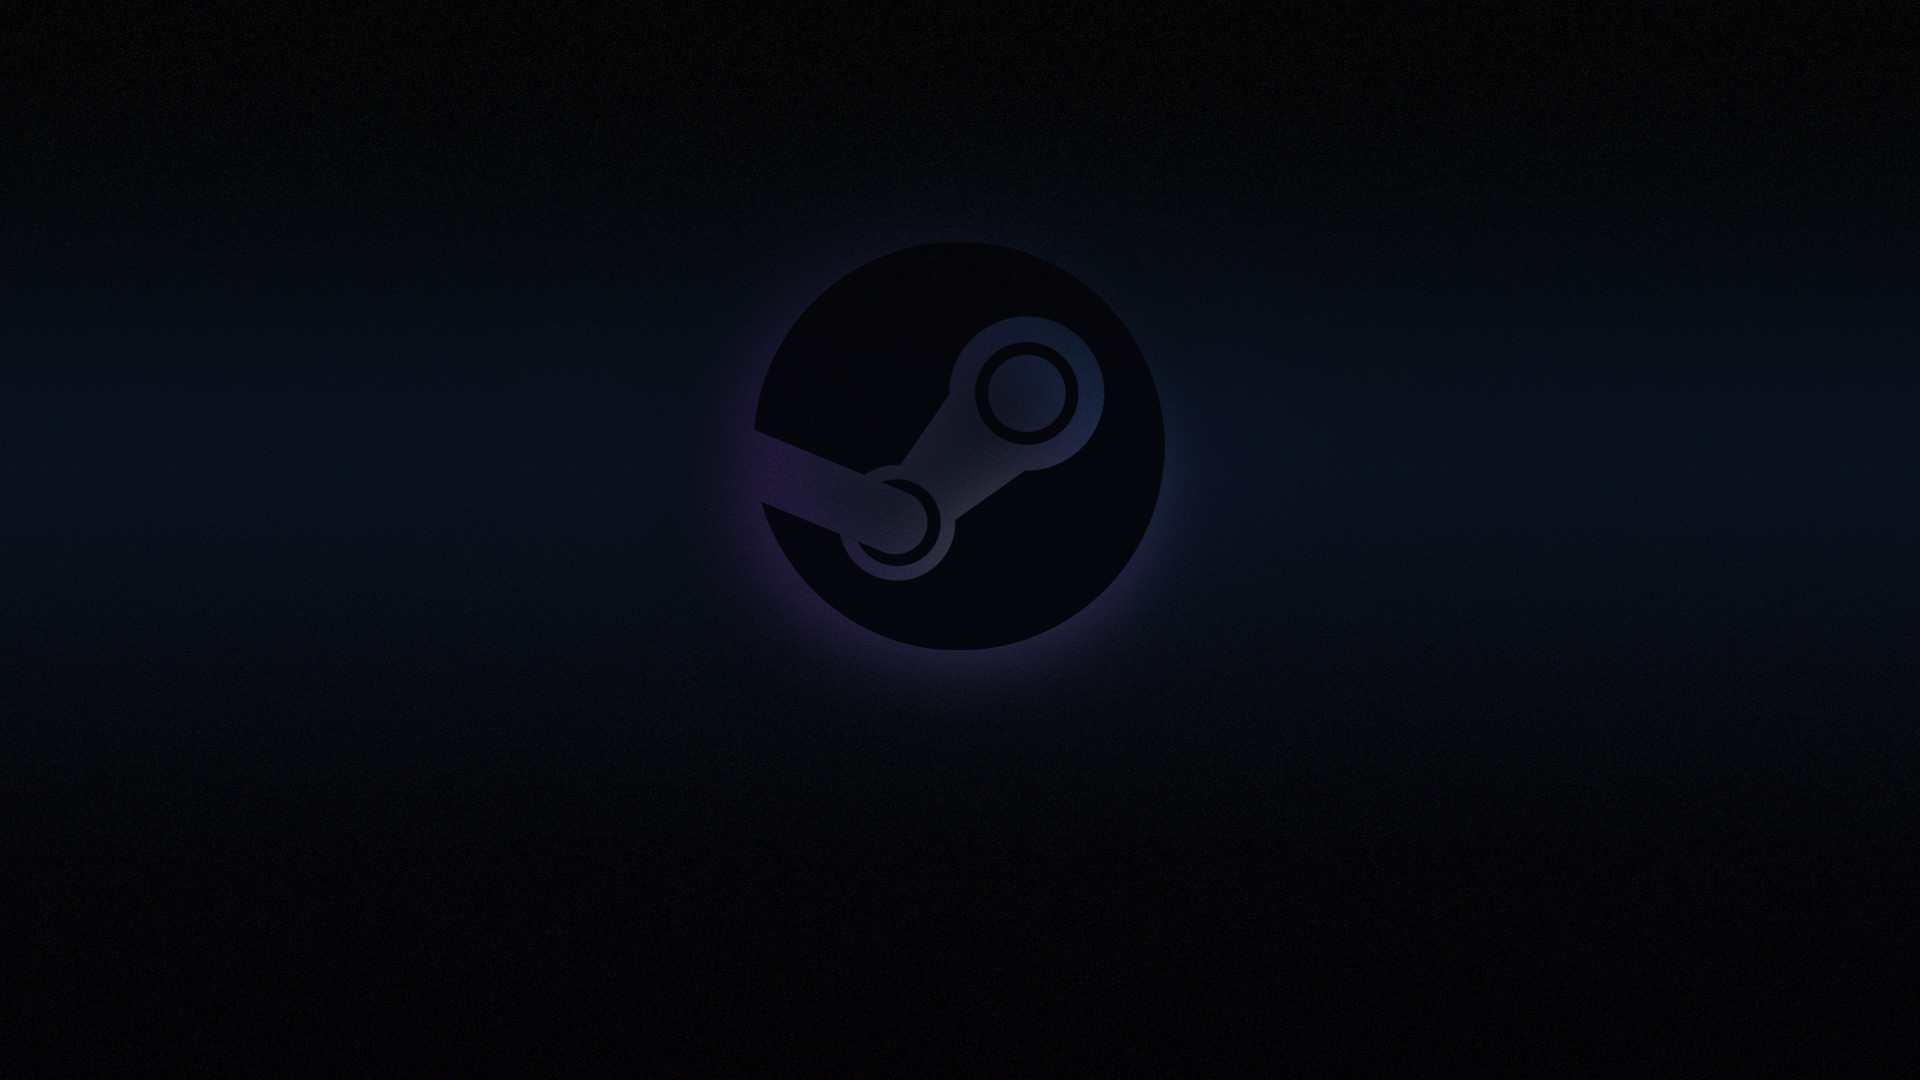 Steam; Steam; Steam Wallpapers; Steam Wallpapers ...